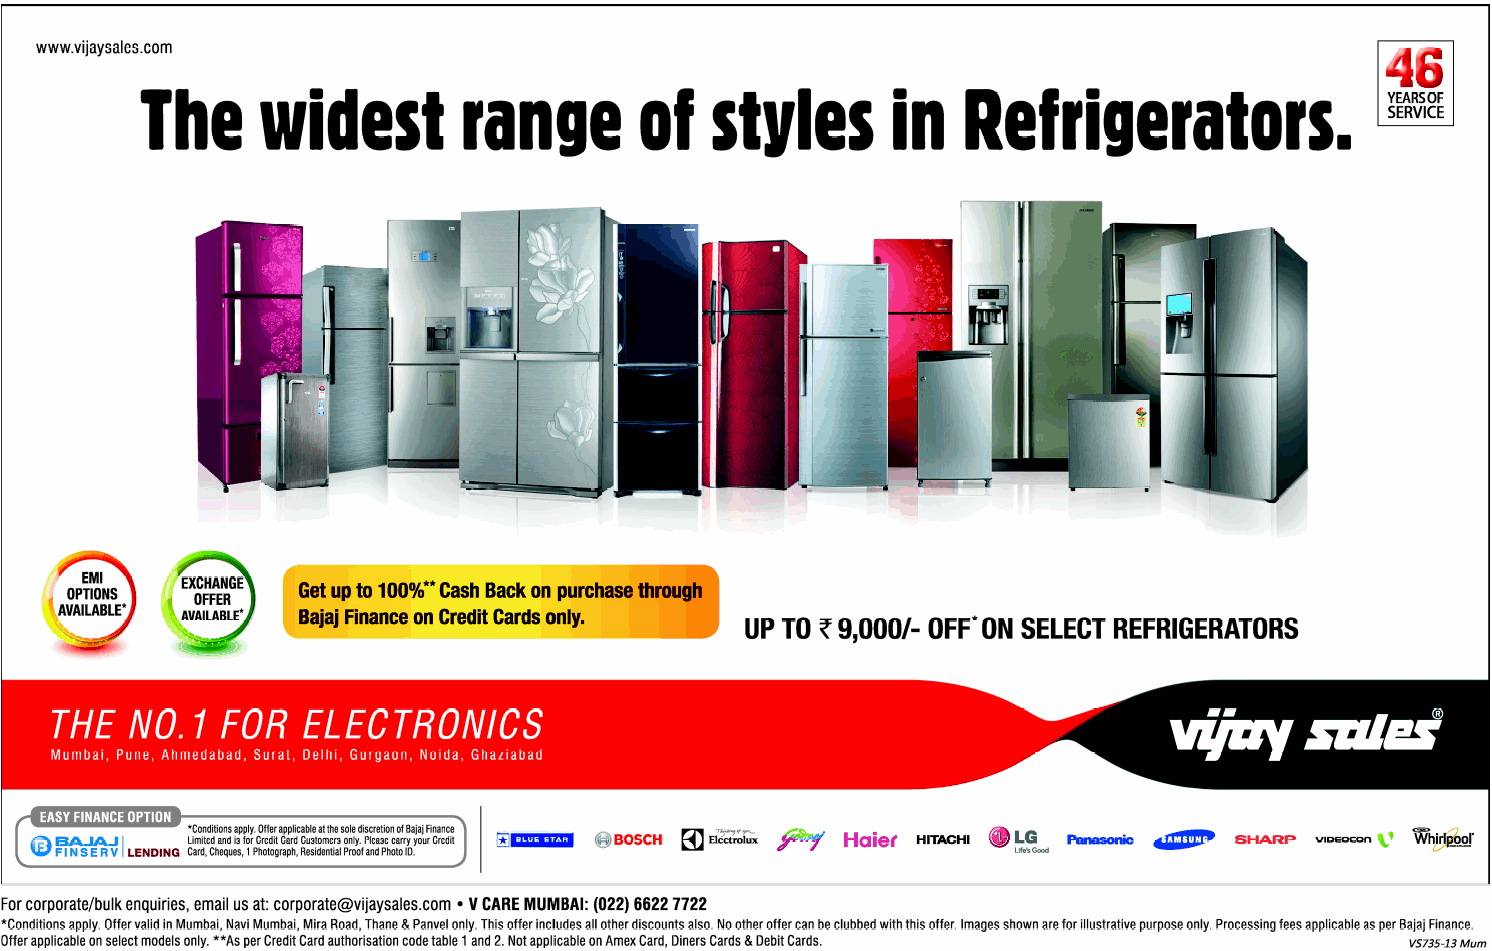 Vijay Sales - Offers on Refrigerators